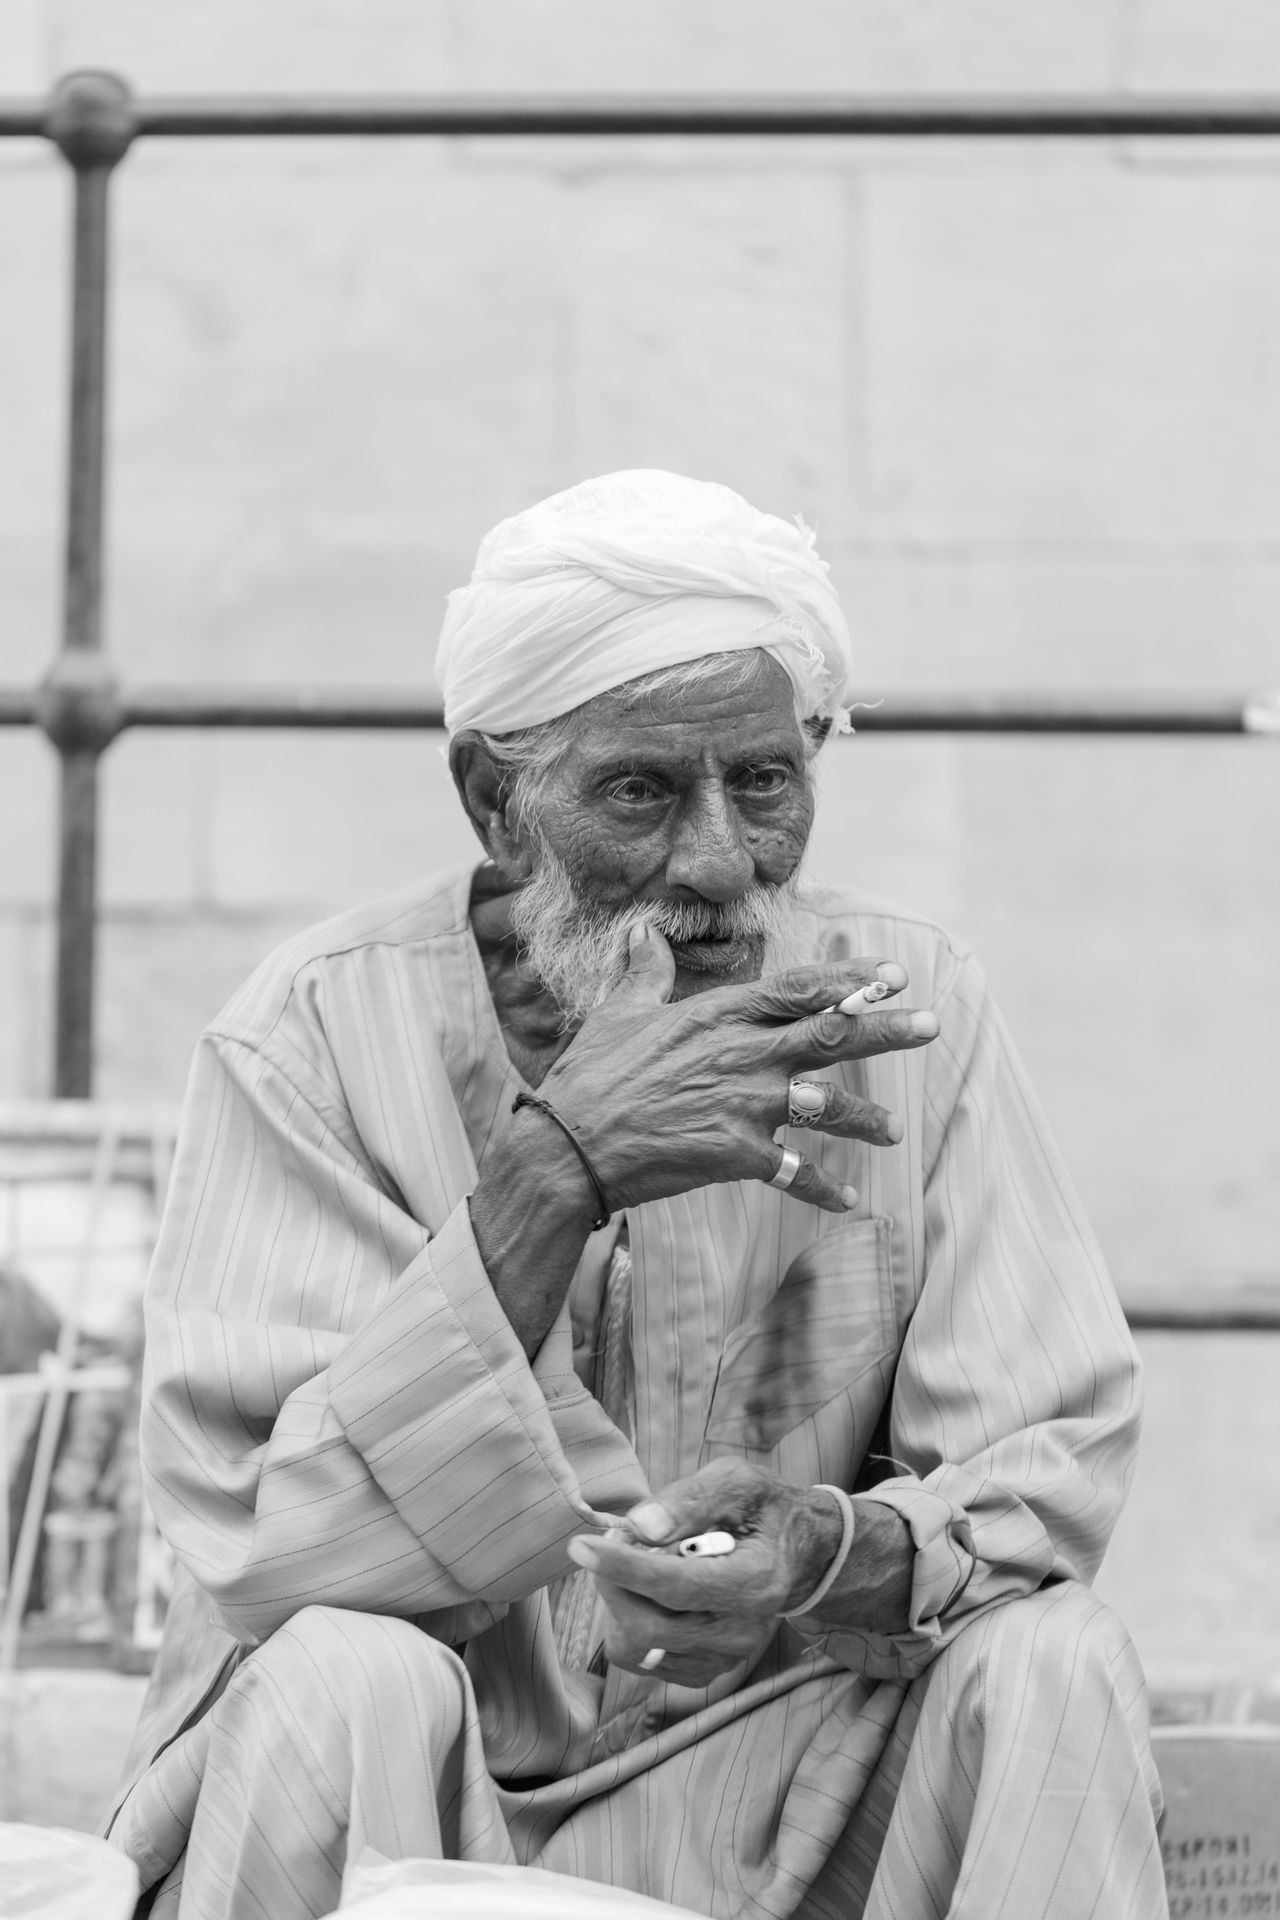 Adult Black And White Blackandwhite Cairo Casual Clothing Cigarette  Cigrettes Egypt Egyptian Egyptian-Faces Focus On Foreground Hat Lifestyles Man Mature Men Old Outdoors Senior Senior Portrait Street Photography Streetphotography Warm Clothing